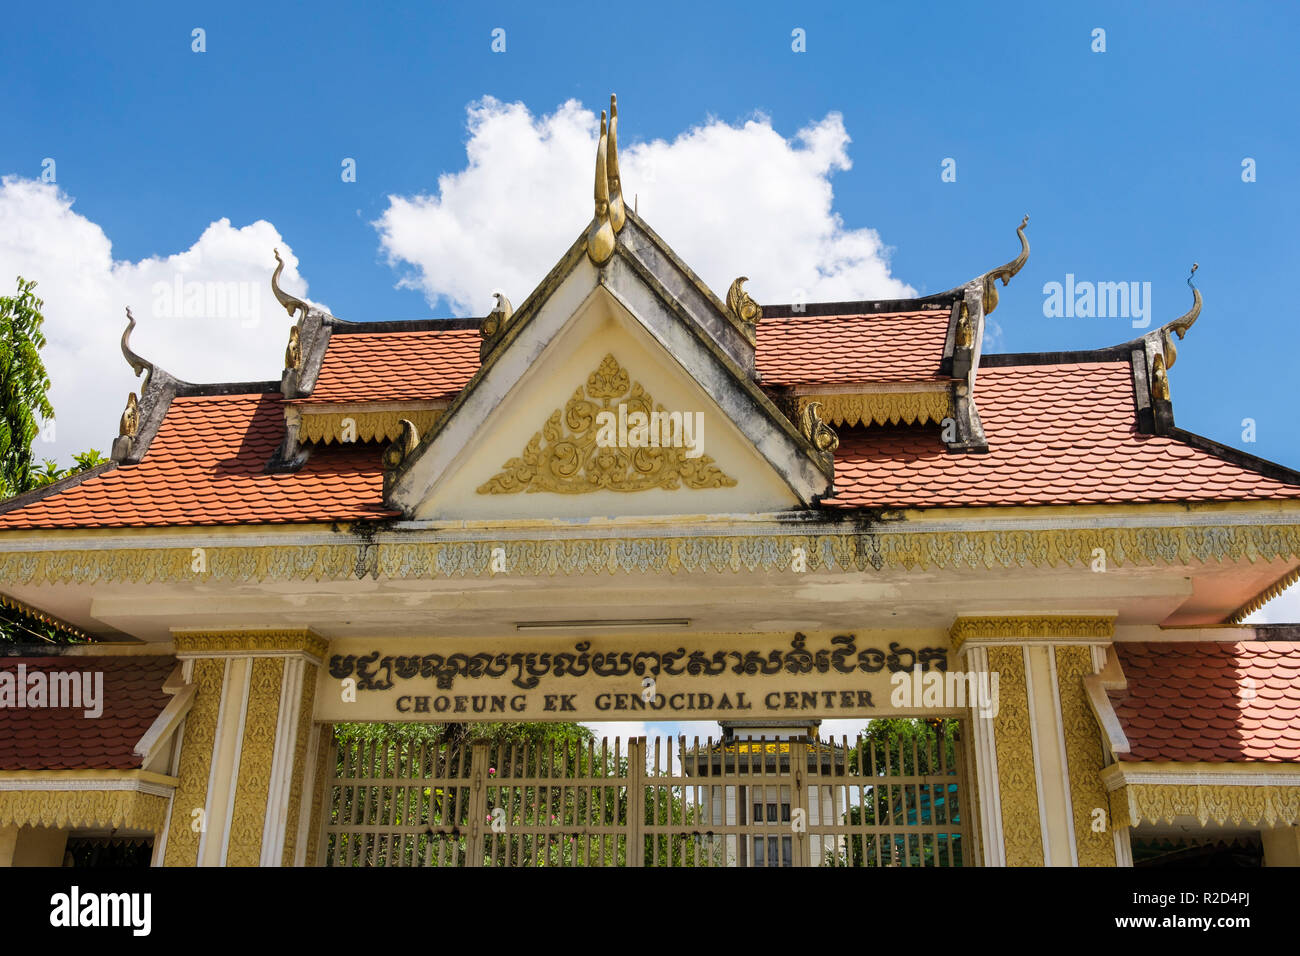 Entrance to The Killing Fields Genocidal Centre memorial site where mass graves of Khmer Rouge victims were found. Choeung Ek, Phnom Penh, Cambodia - Stock Image